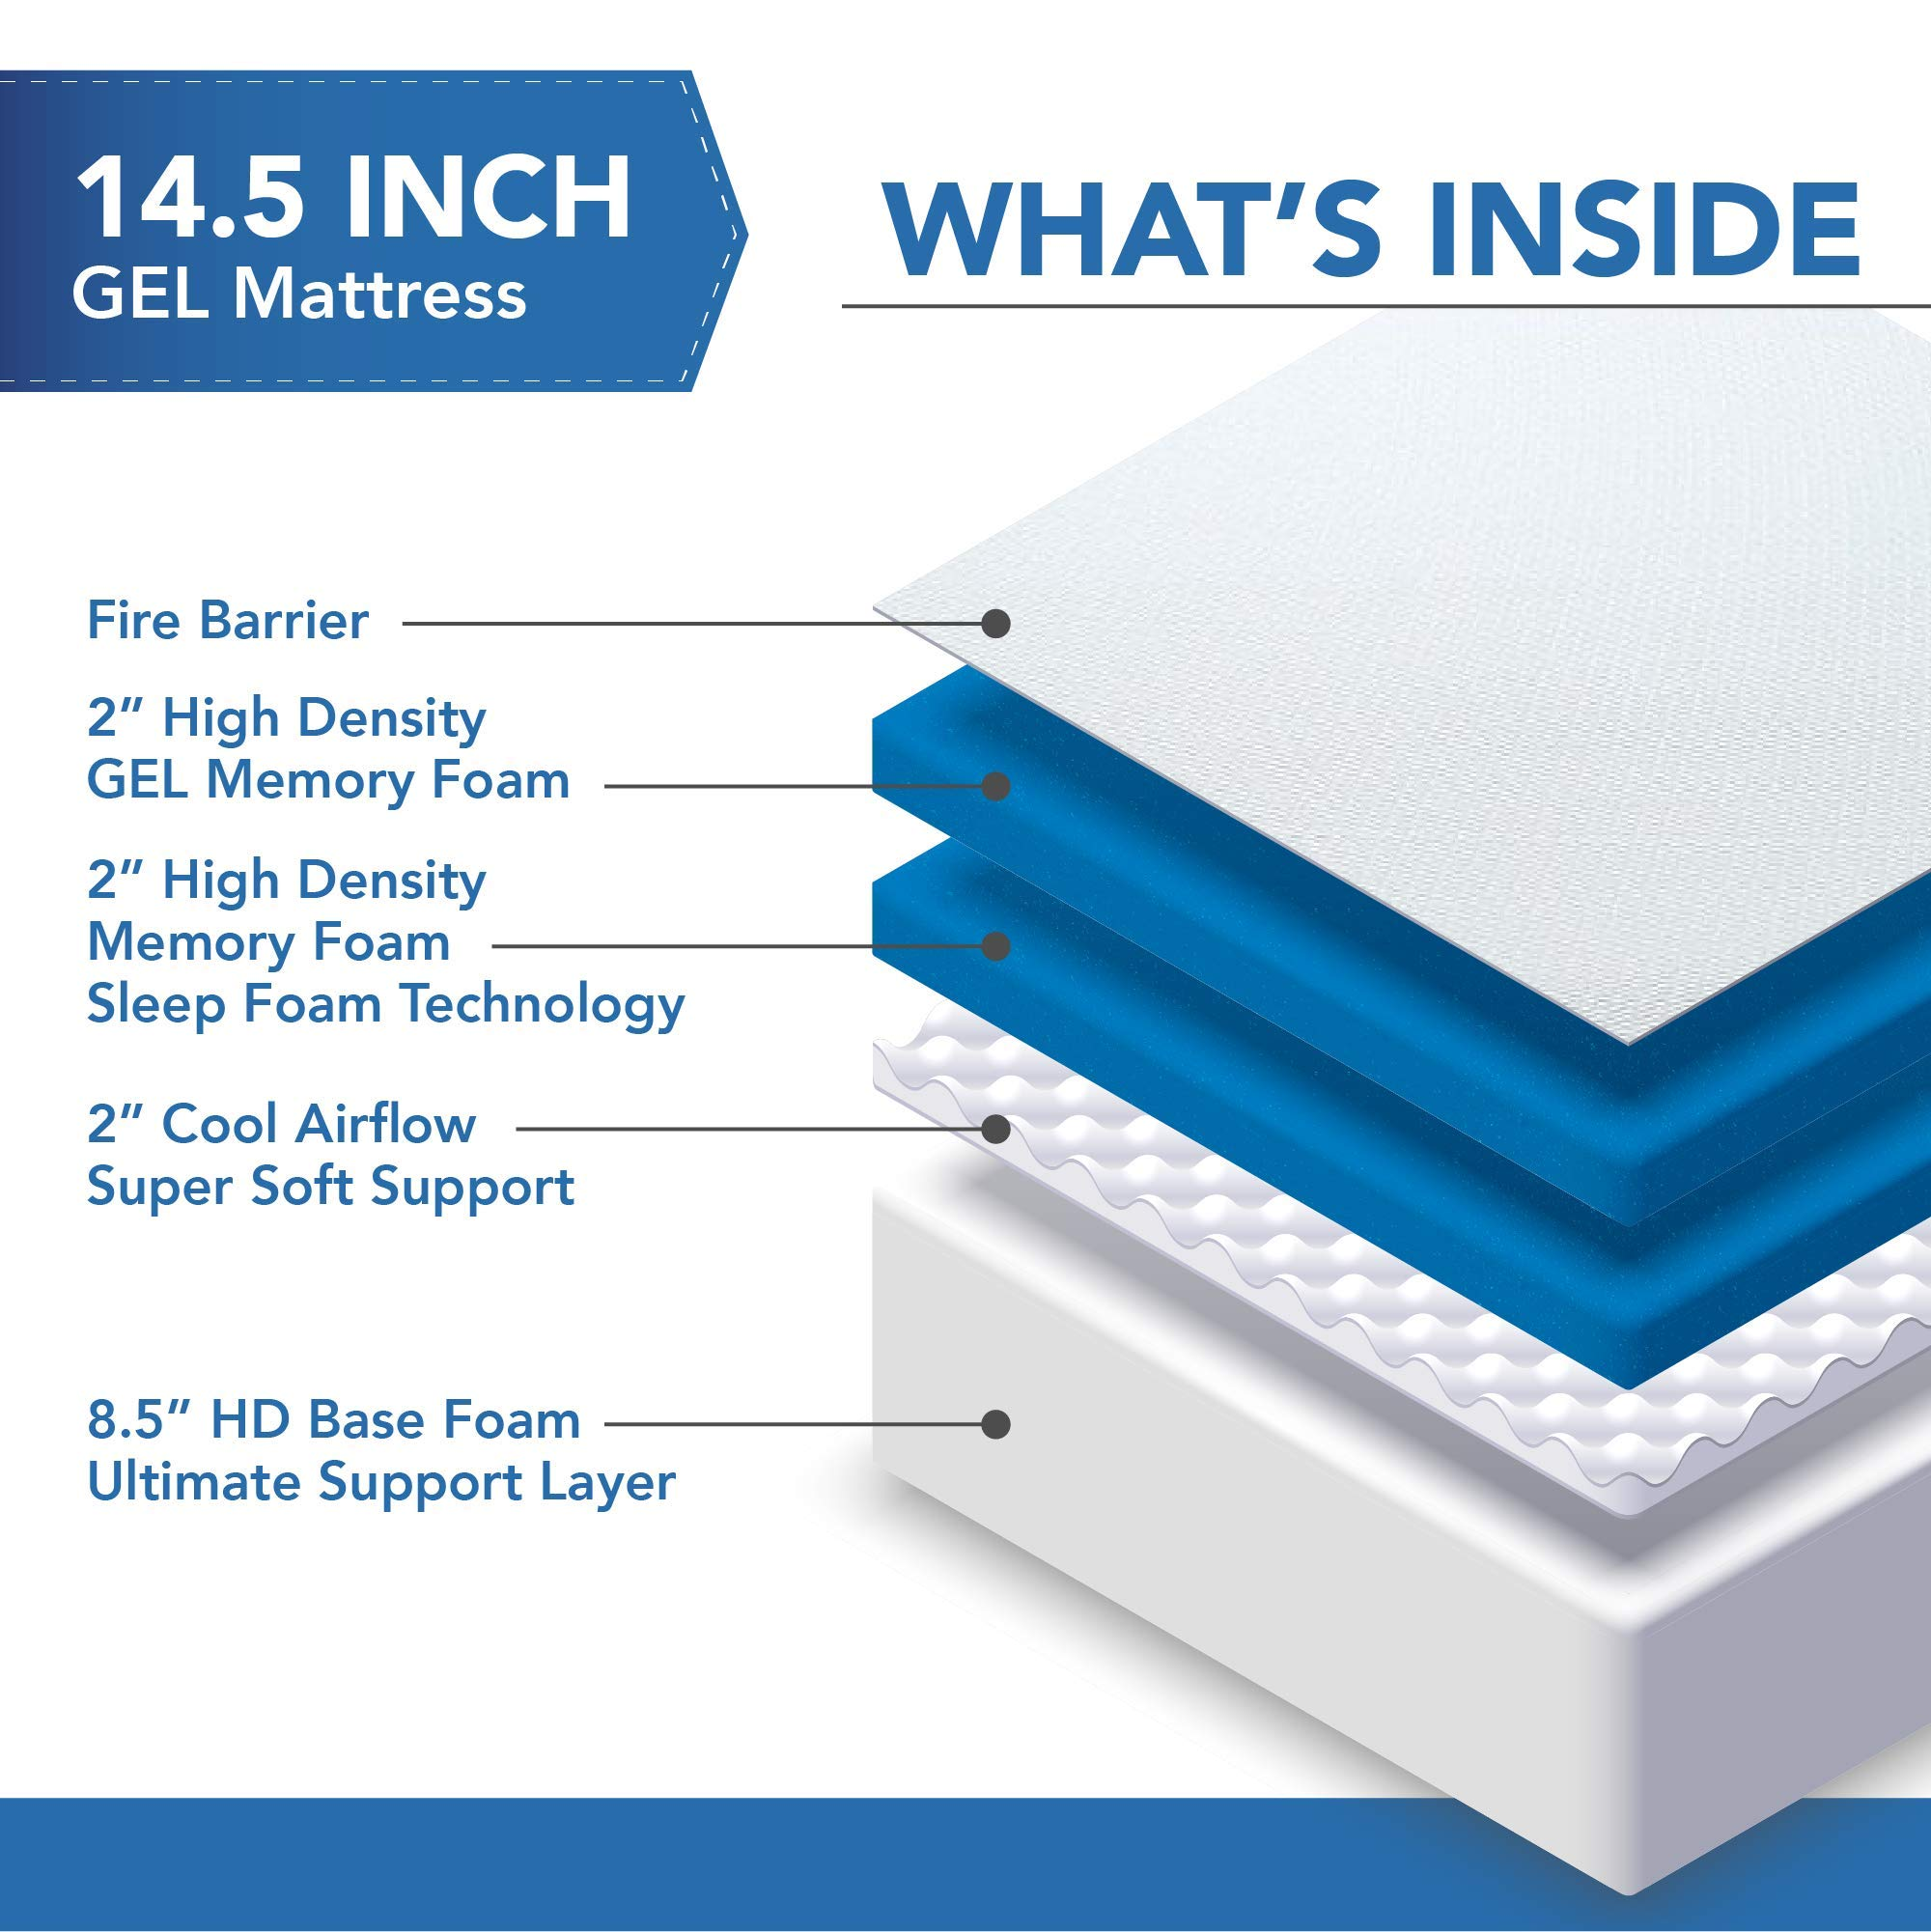 DynastyMattress New! 14.5-Inch CoolBreeze Plush Gel Memory Foam Mattress w/Free Pillows (Queen) by DynastyMattress